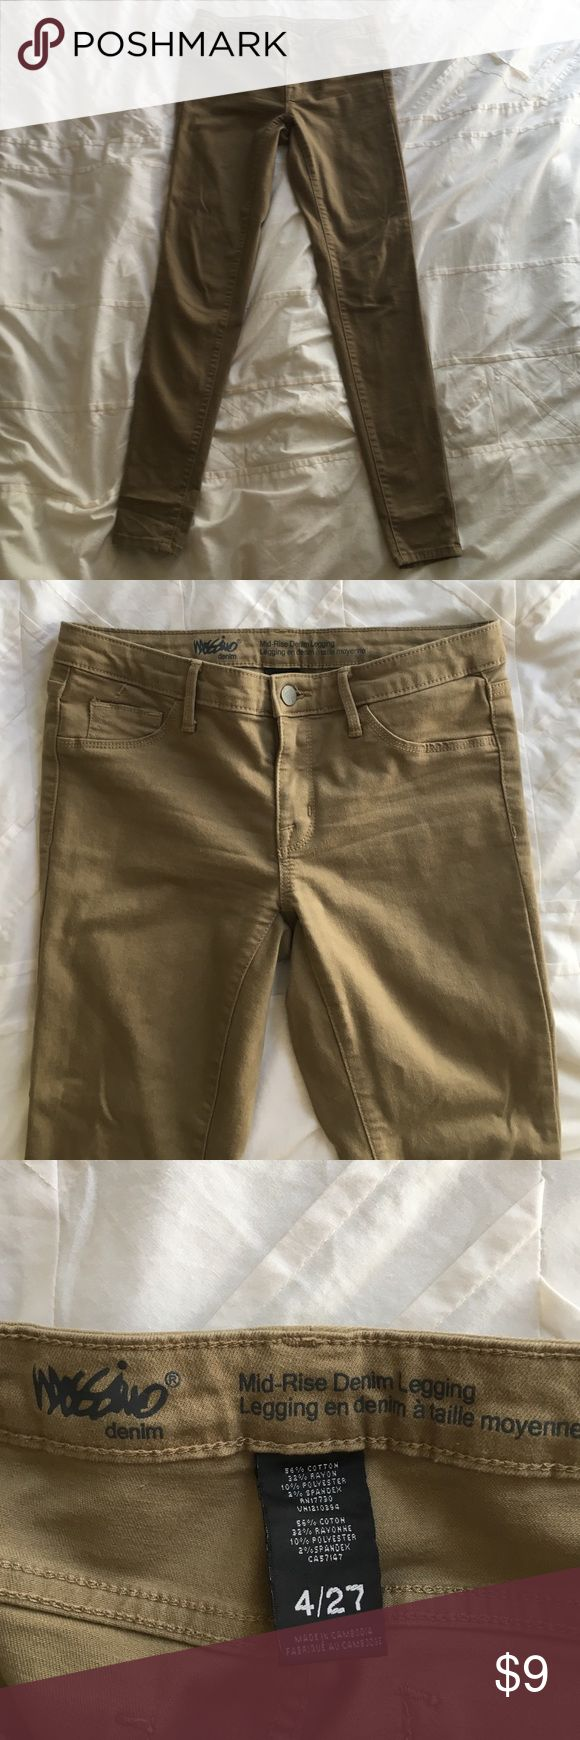 Tan jeans stretchy Comfortable stretchy tan jeans from target worn just a few times straight leg Jeans Skinny